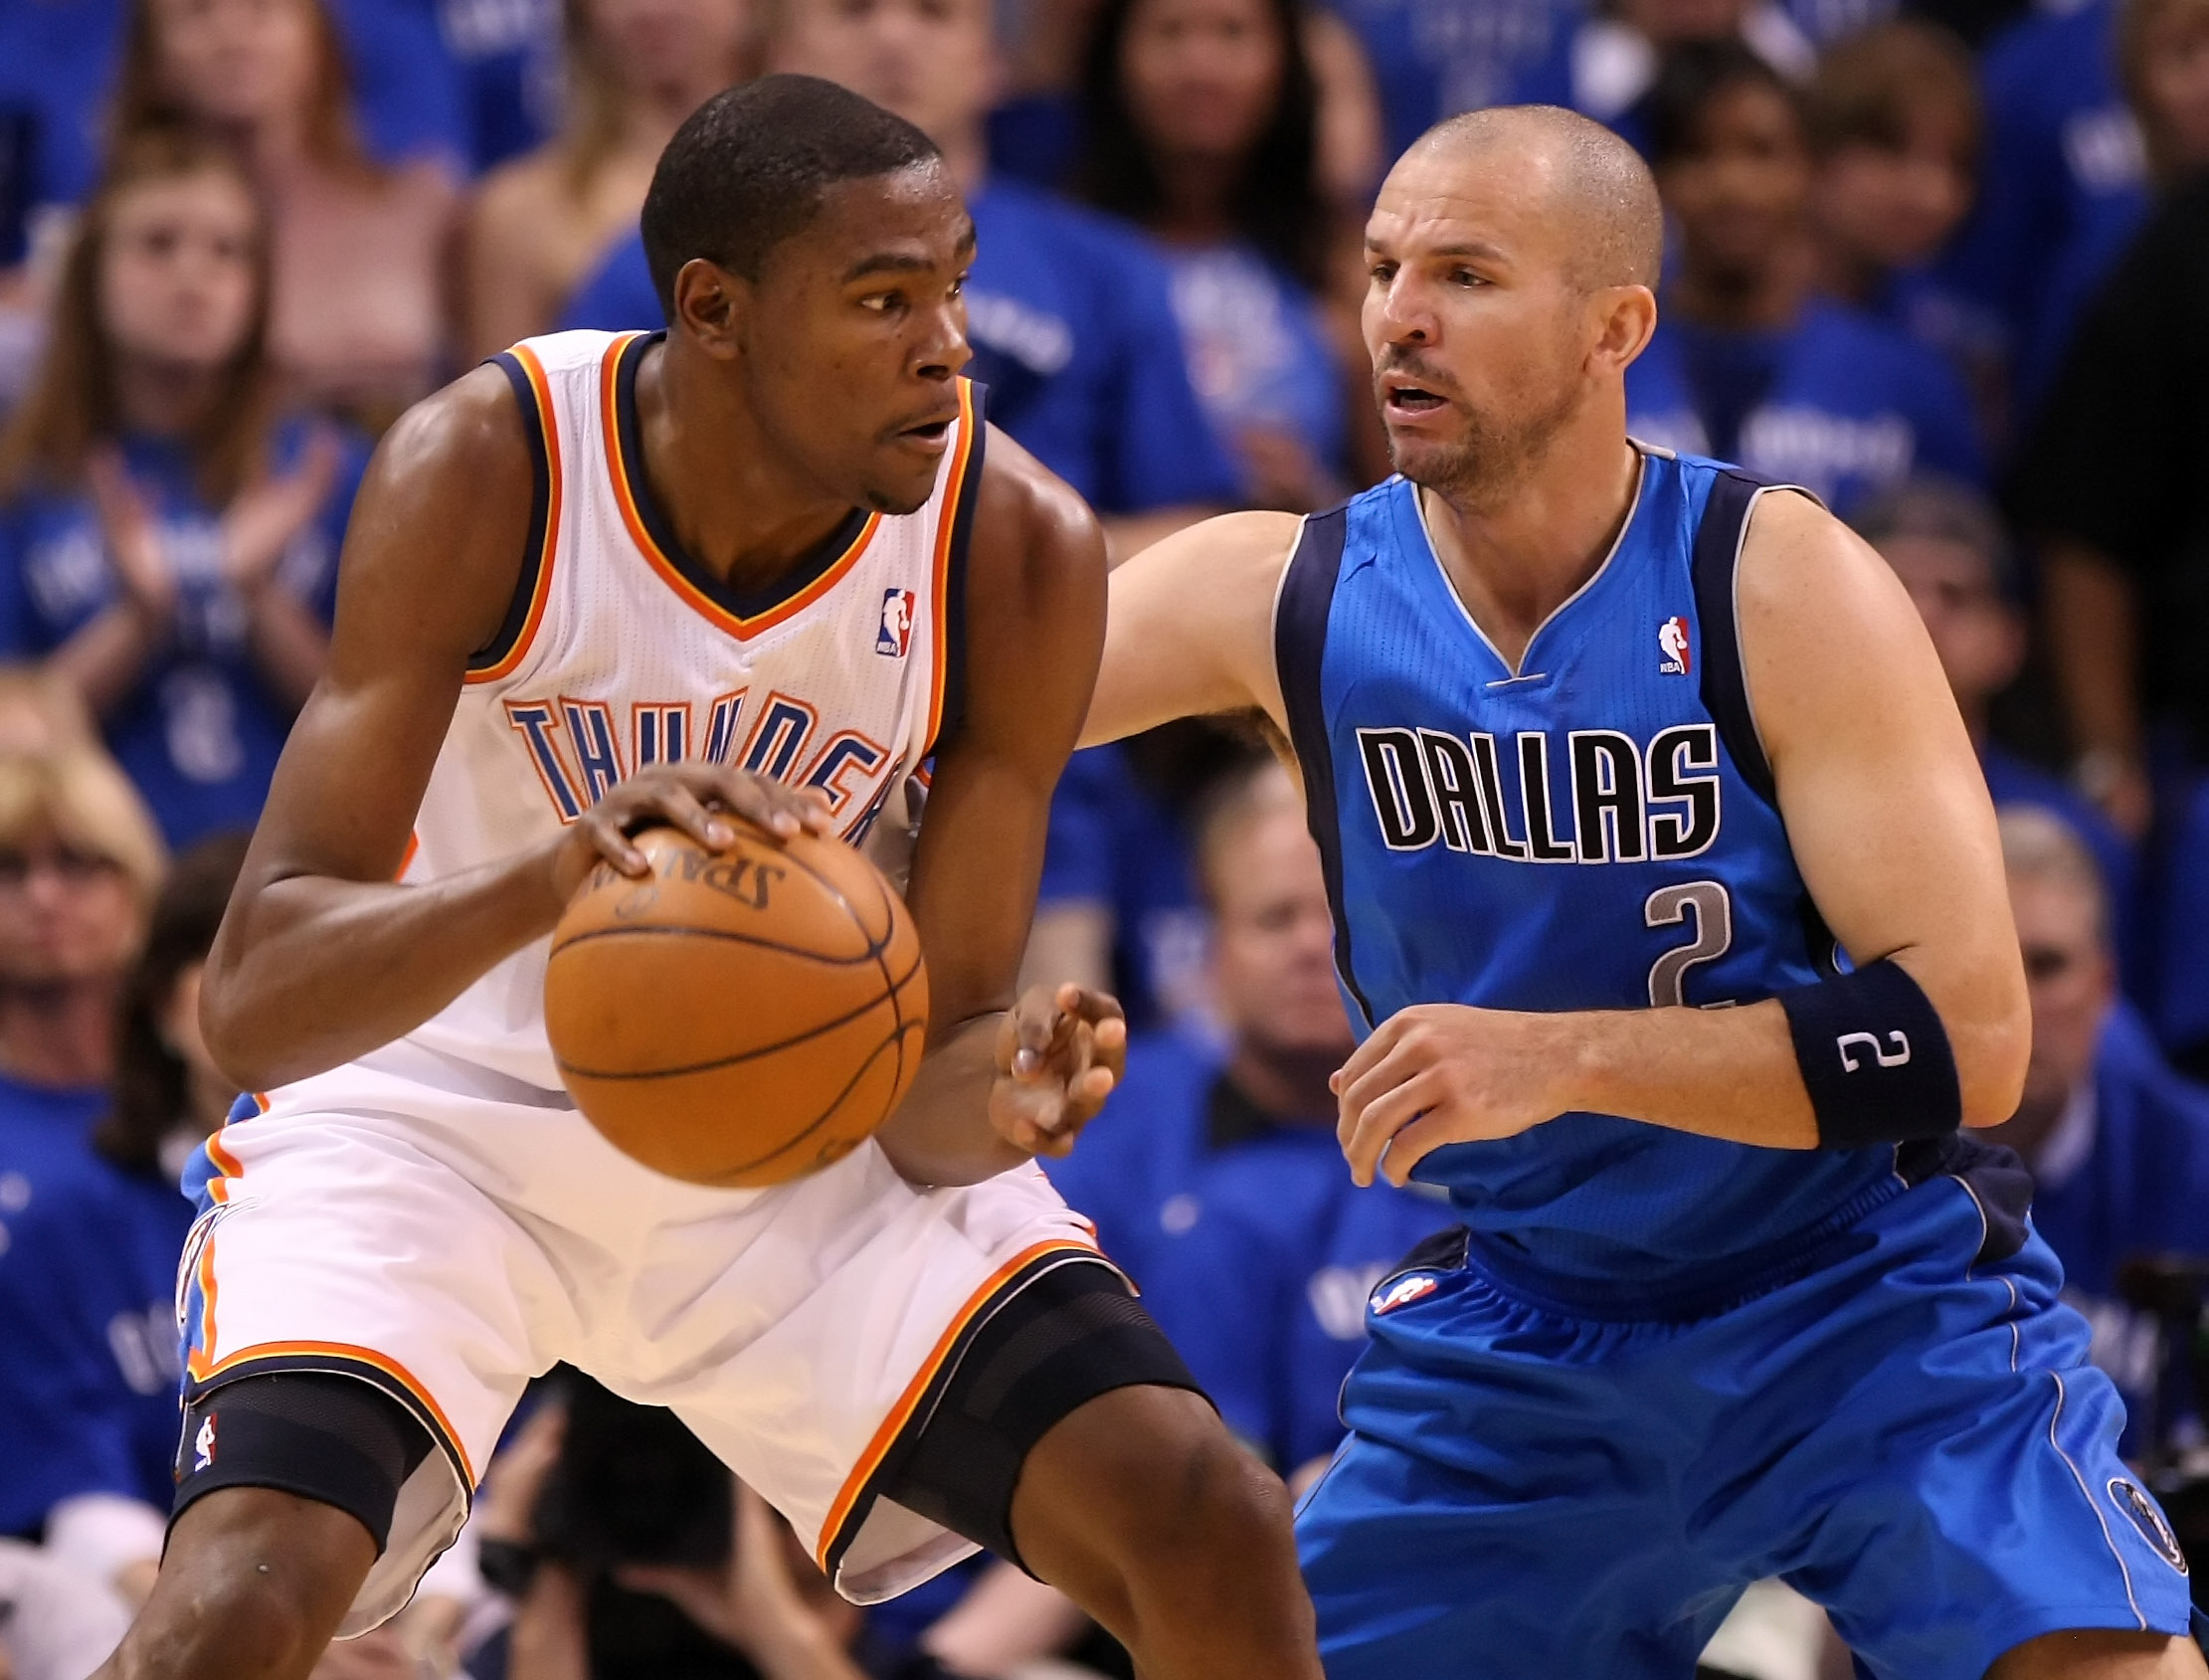 OKLAHOMA CITY, OK - MAY 23:  Kevin Durant #35 of the Oklahoma City Thunder posts up Jason Kidd #2 of the Dallas Mavericks in the first half in Game Four of the Western Conference Finals during the 2011 NBA Playoffs at Oklahoma City Arena on May 23, 2011 i